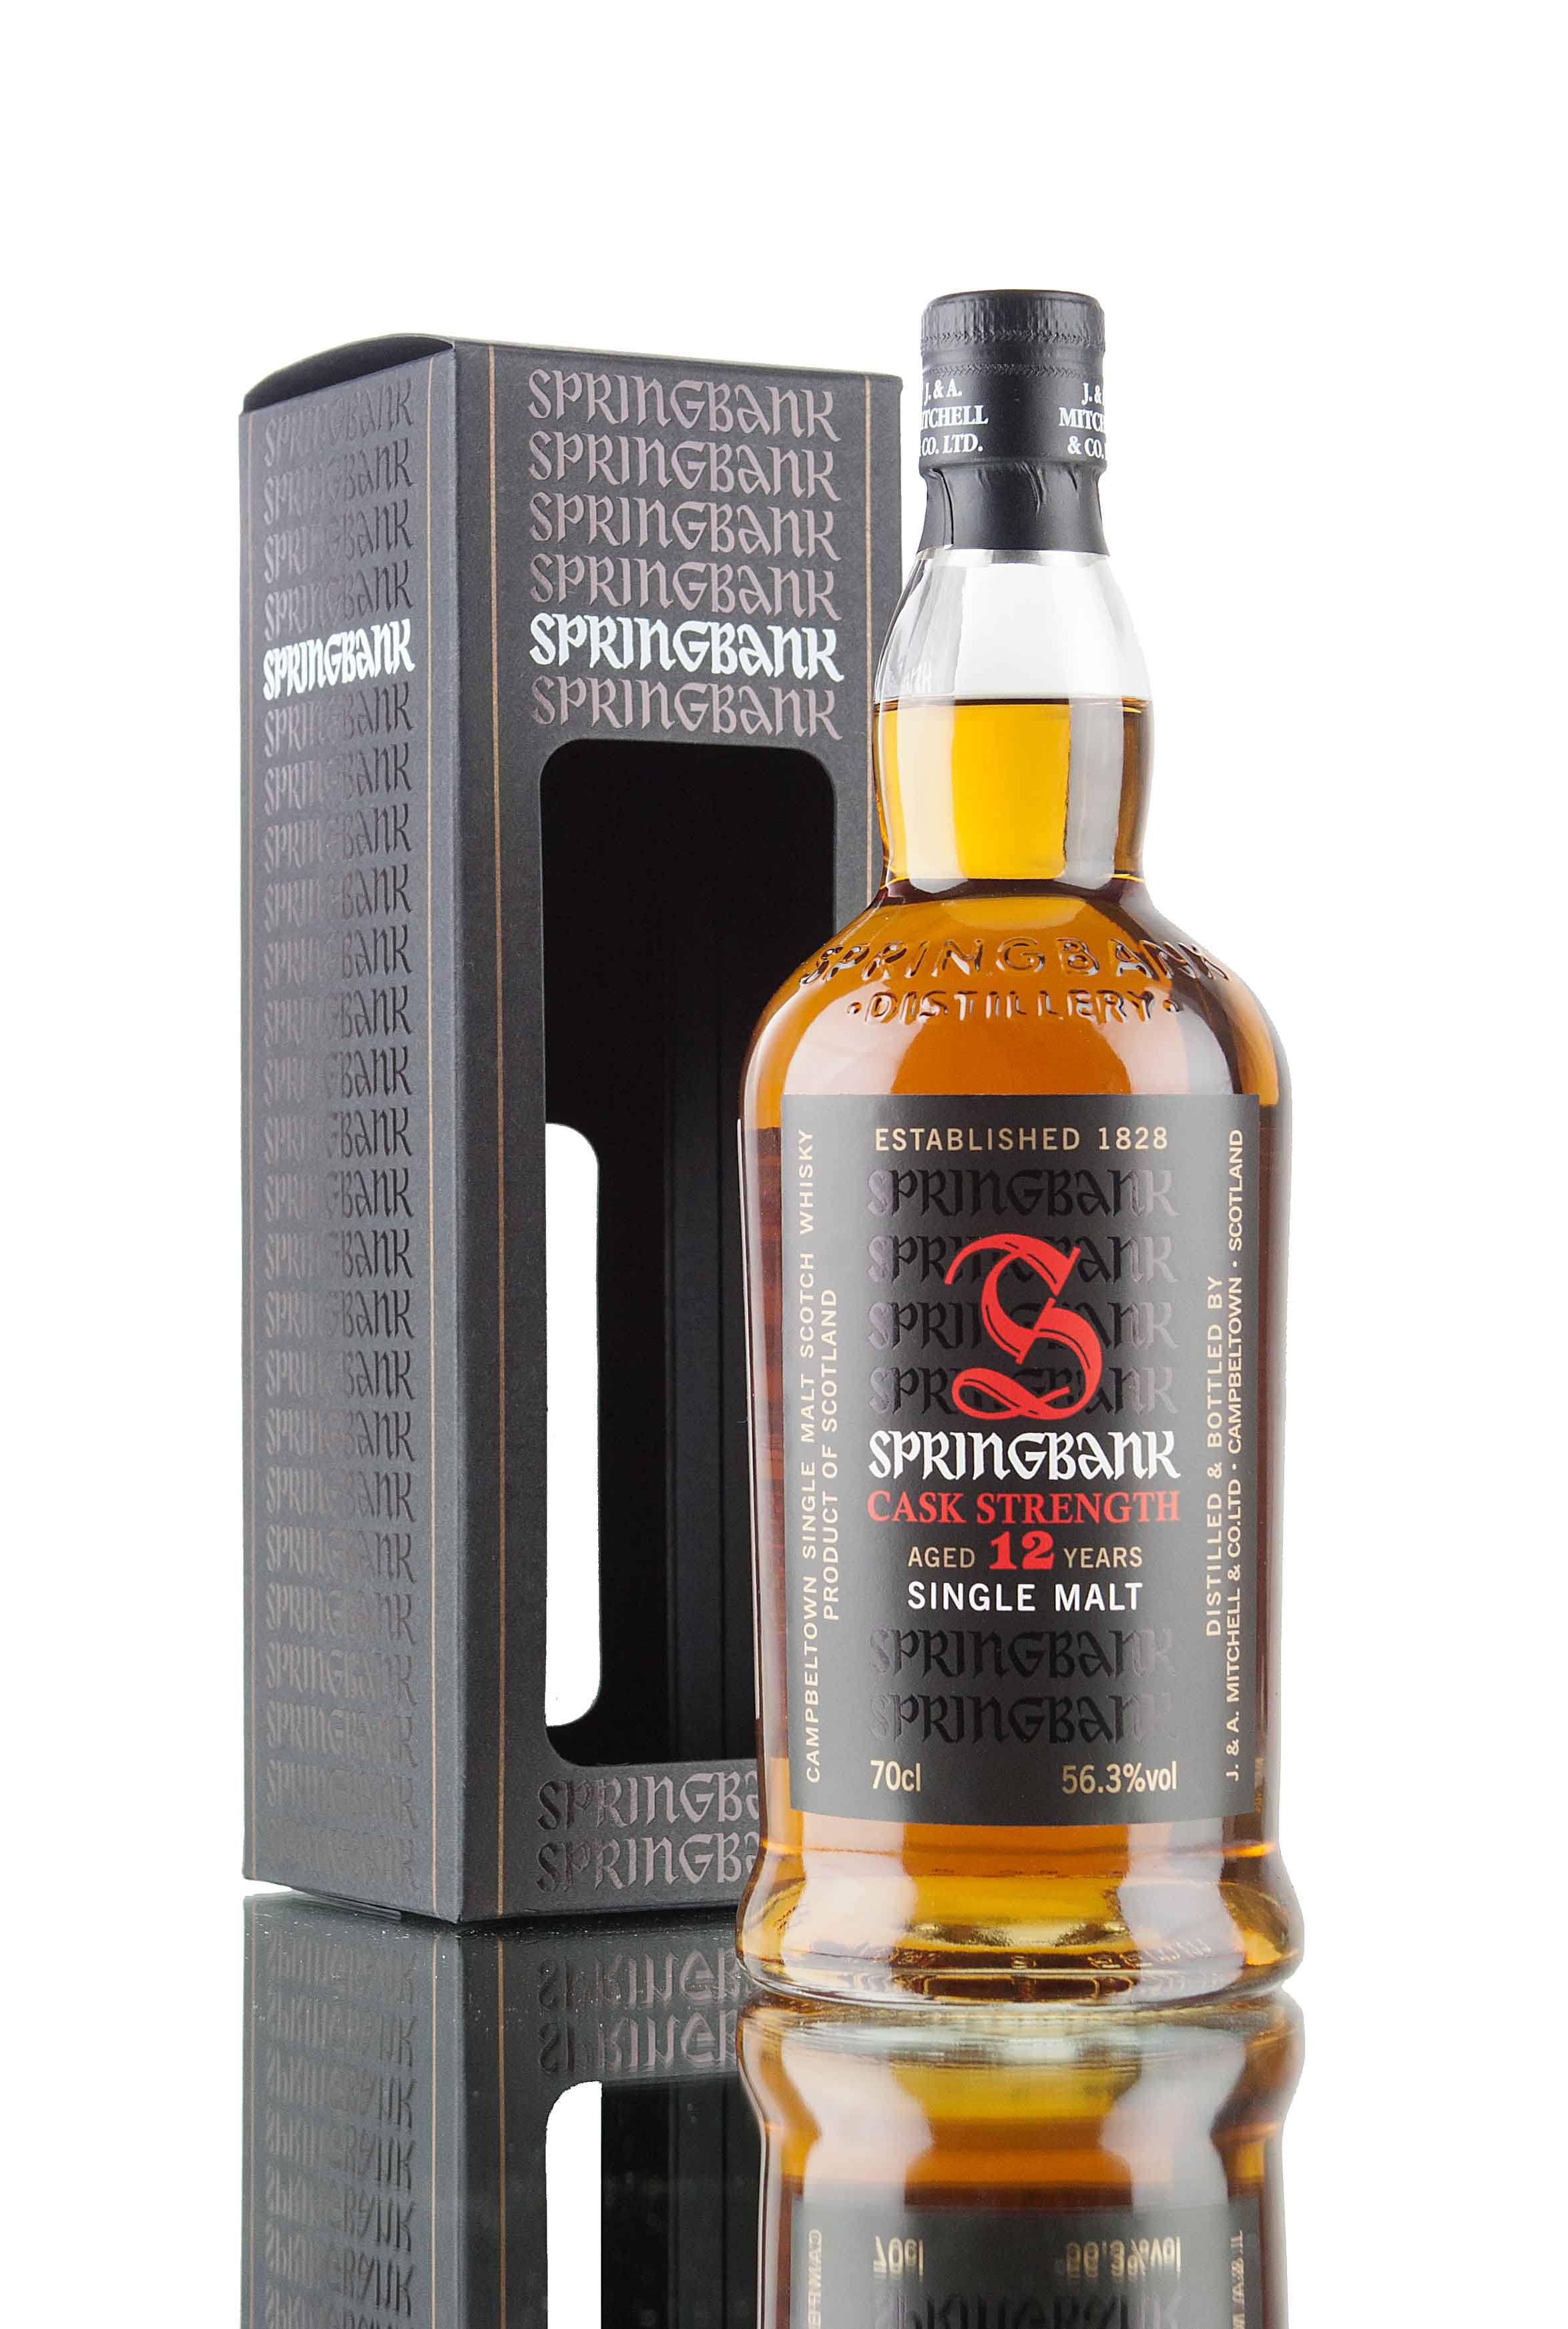 Springbank 12 Year Old Cask Strength - 56.3%